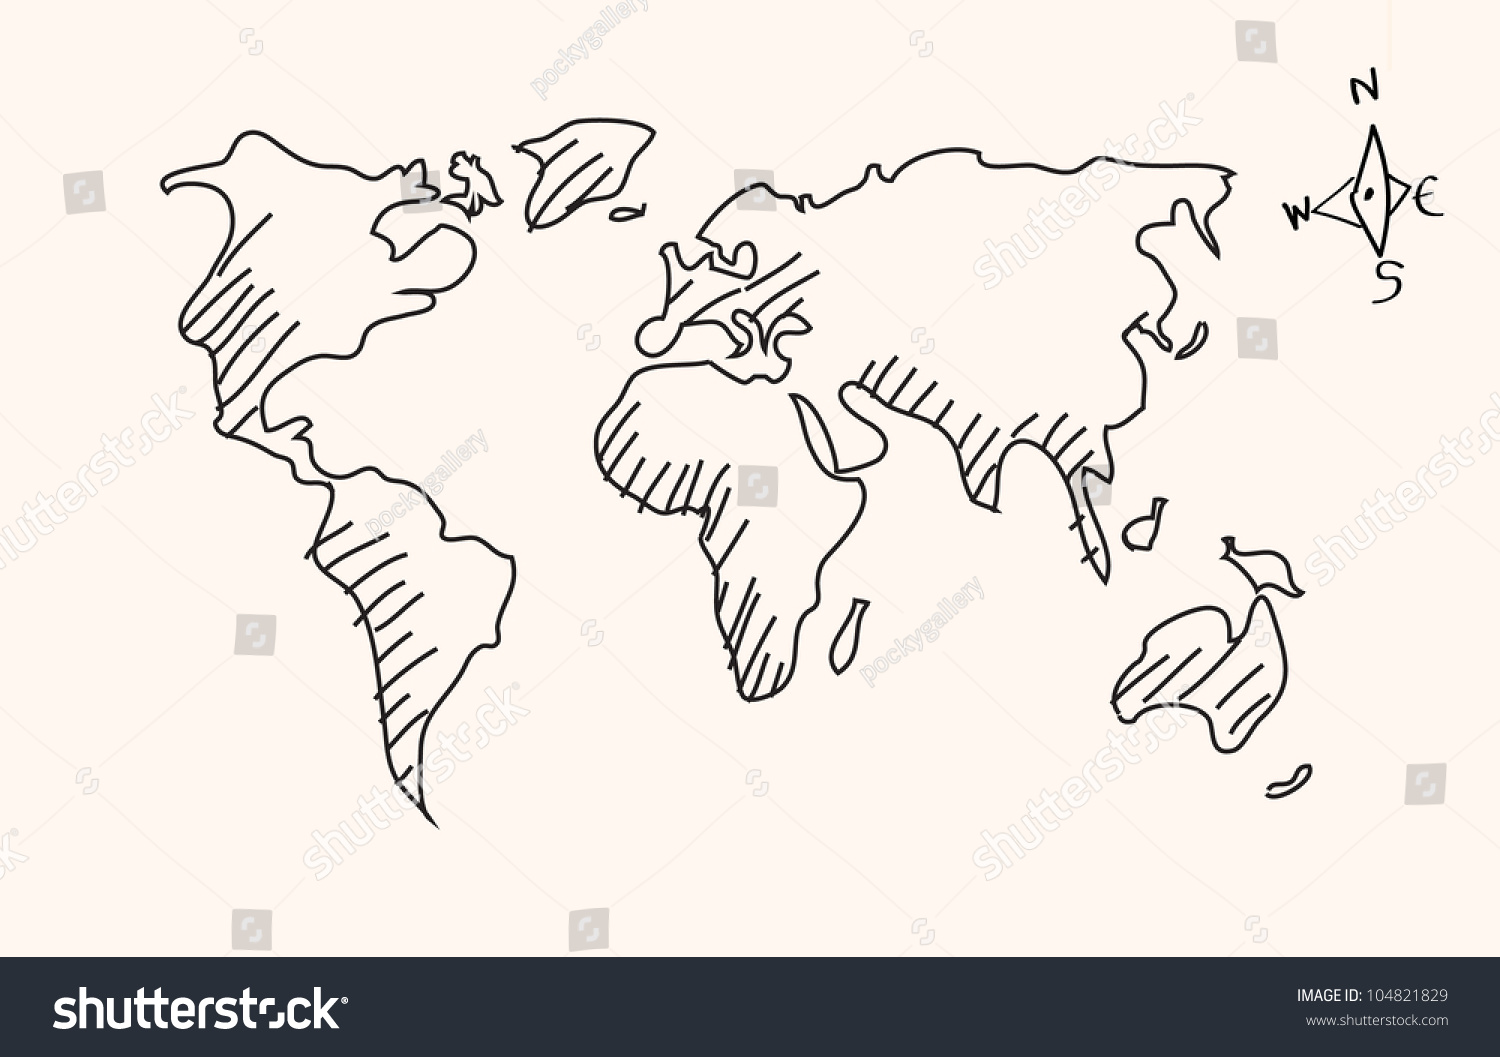 Hand drawn world map vector stock vector royalty free 104821829 hand drawn world map vector gumiabroncs Image collections